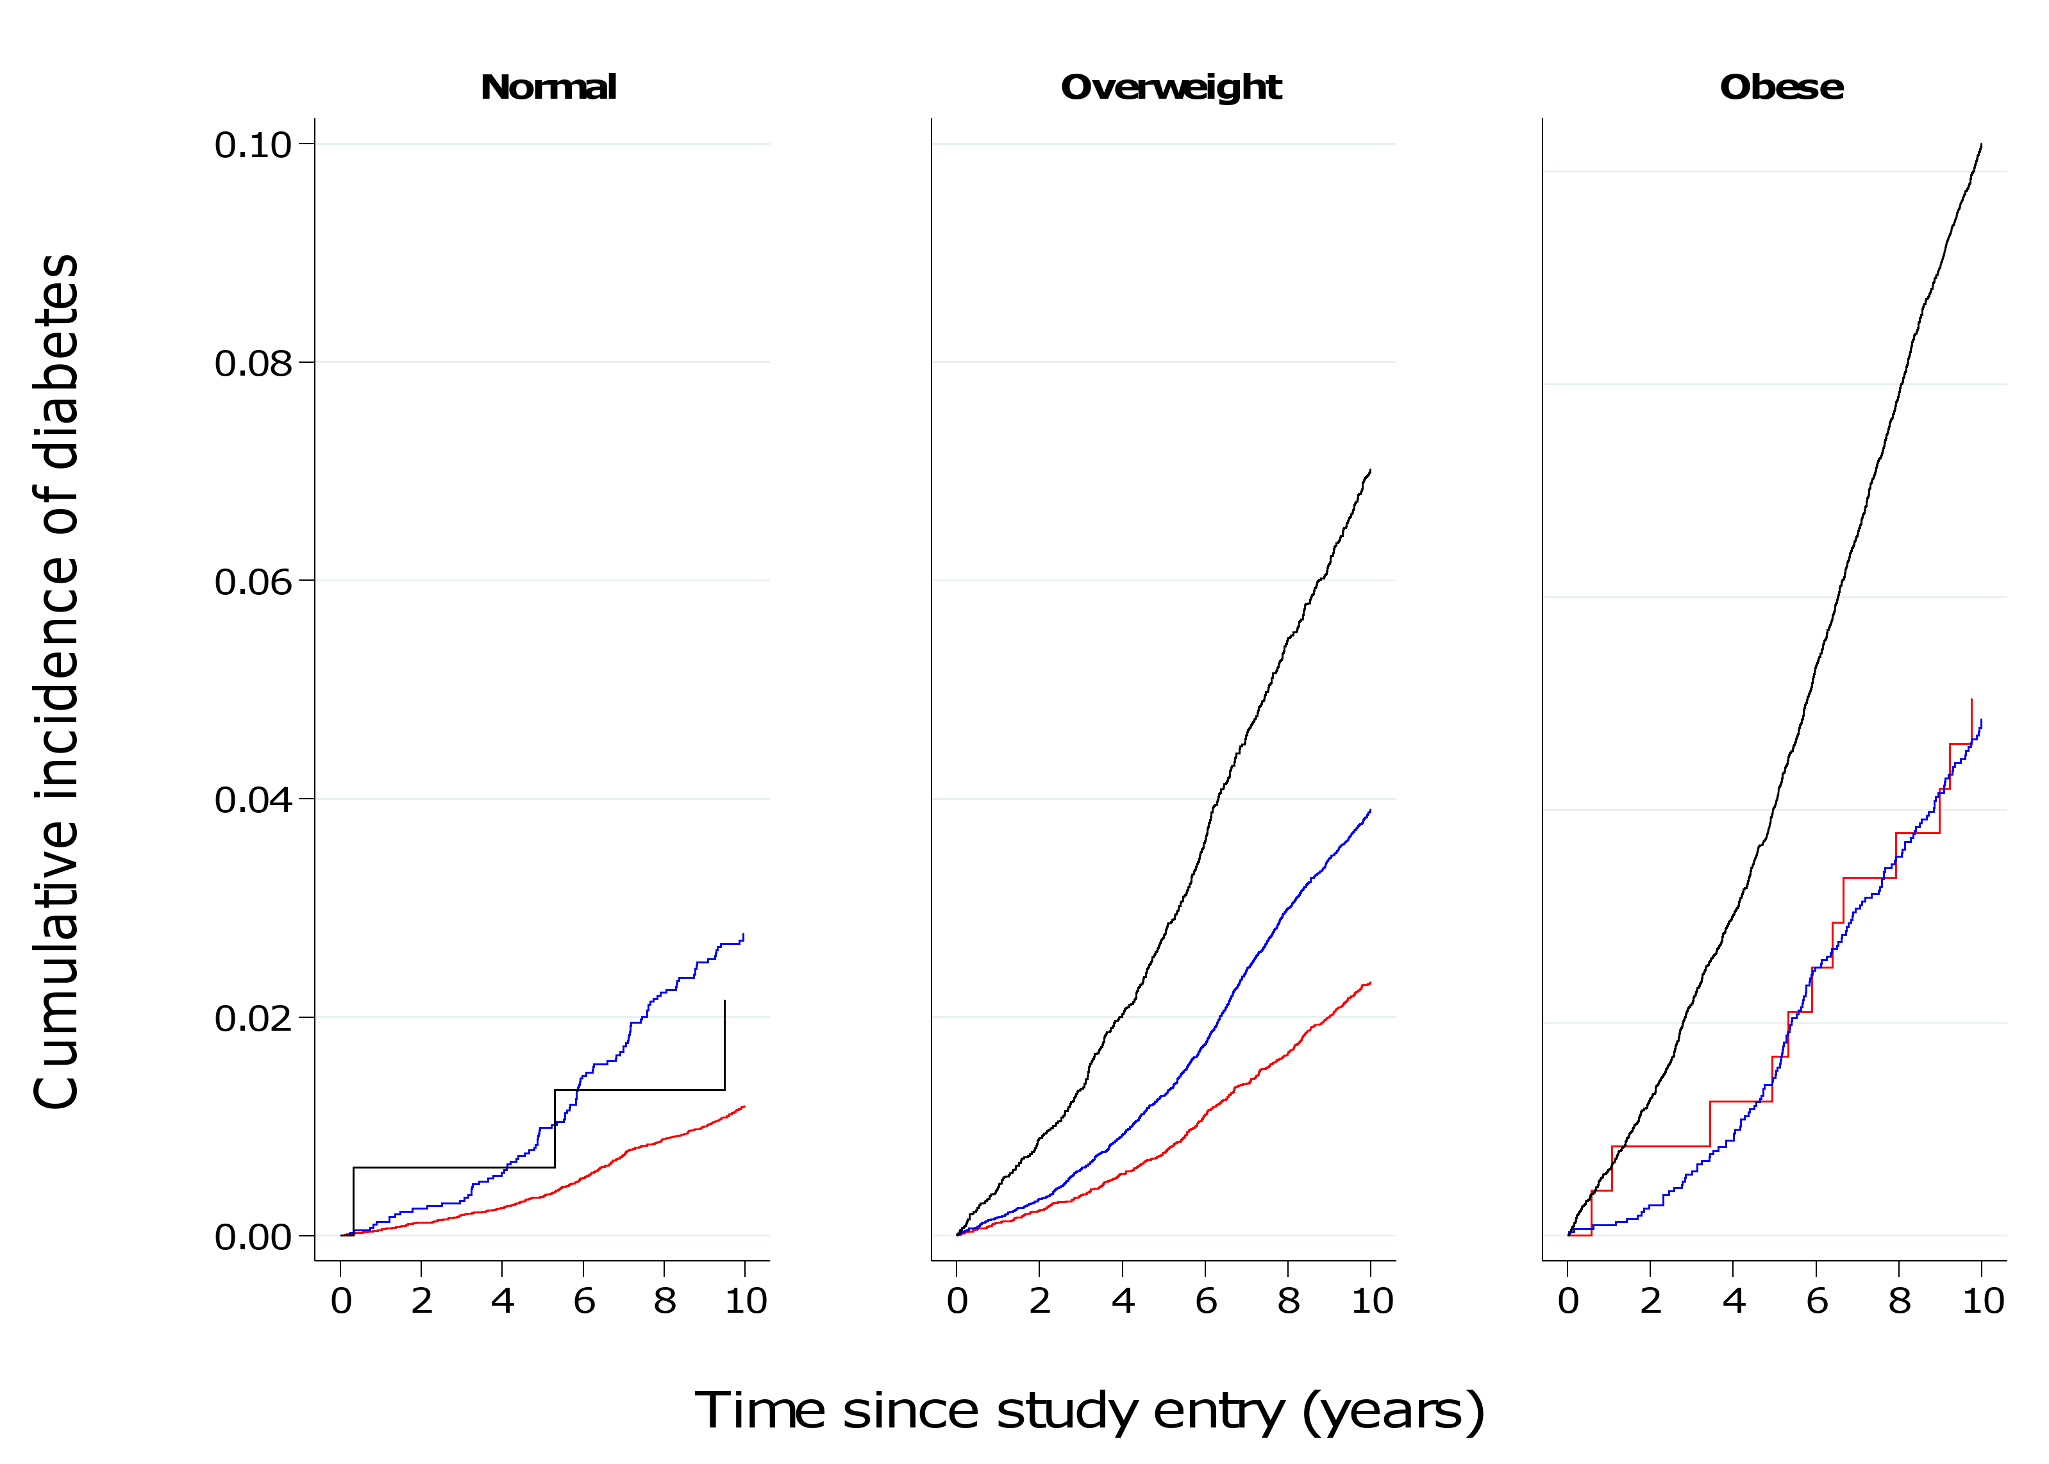 Cumulative incidence of type 2 diabetes over 10 y by BMI and waist circumference groups in men.